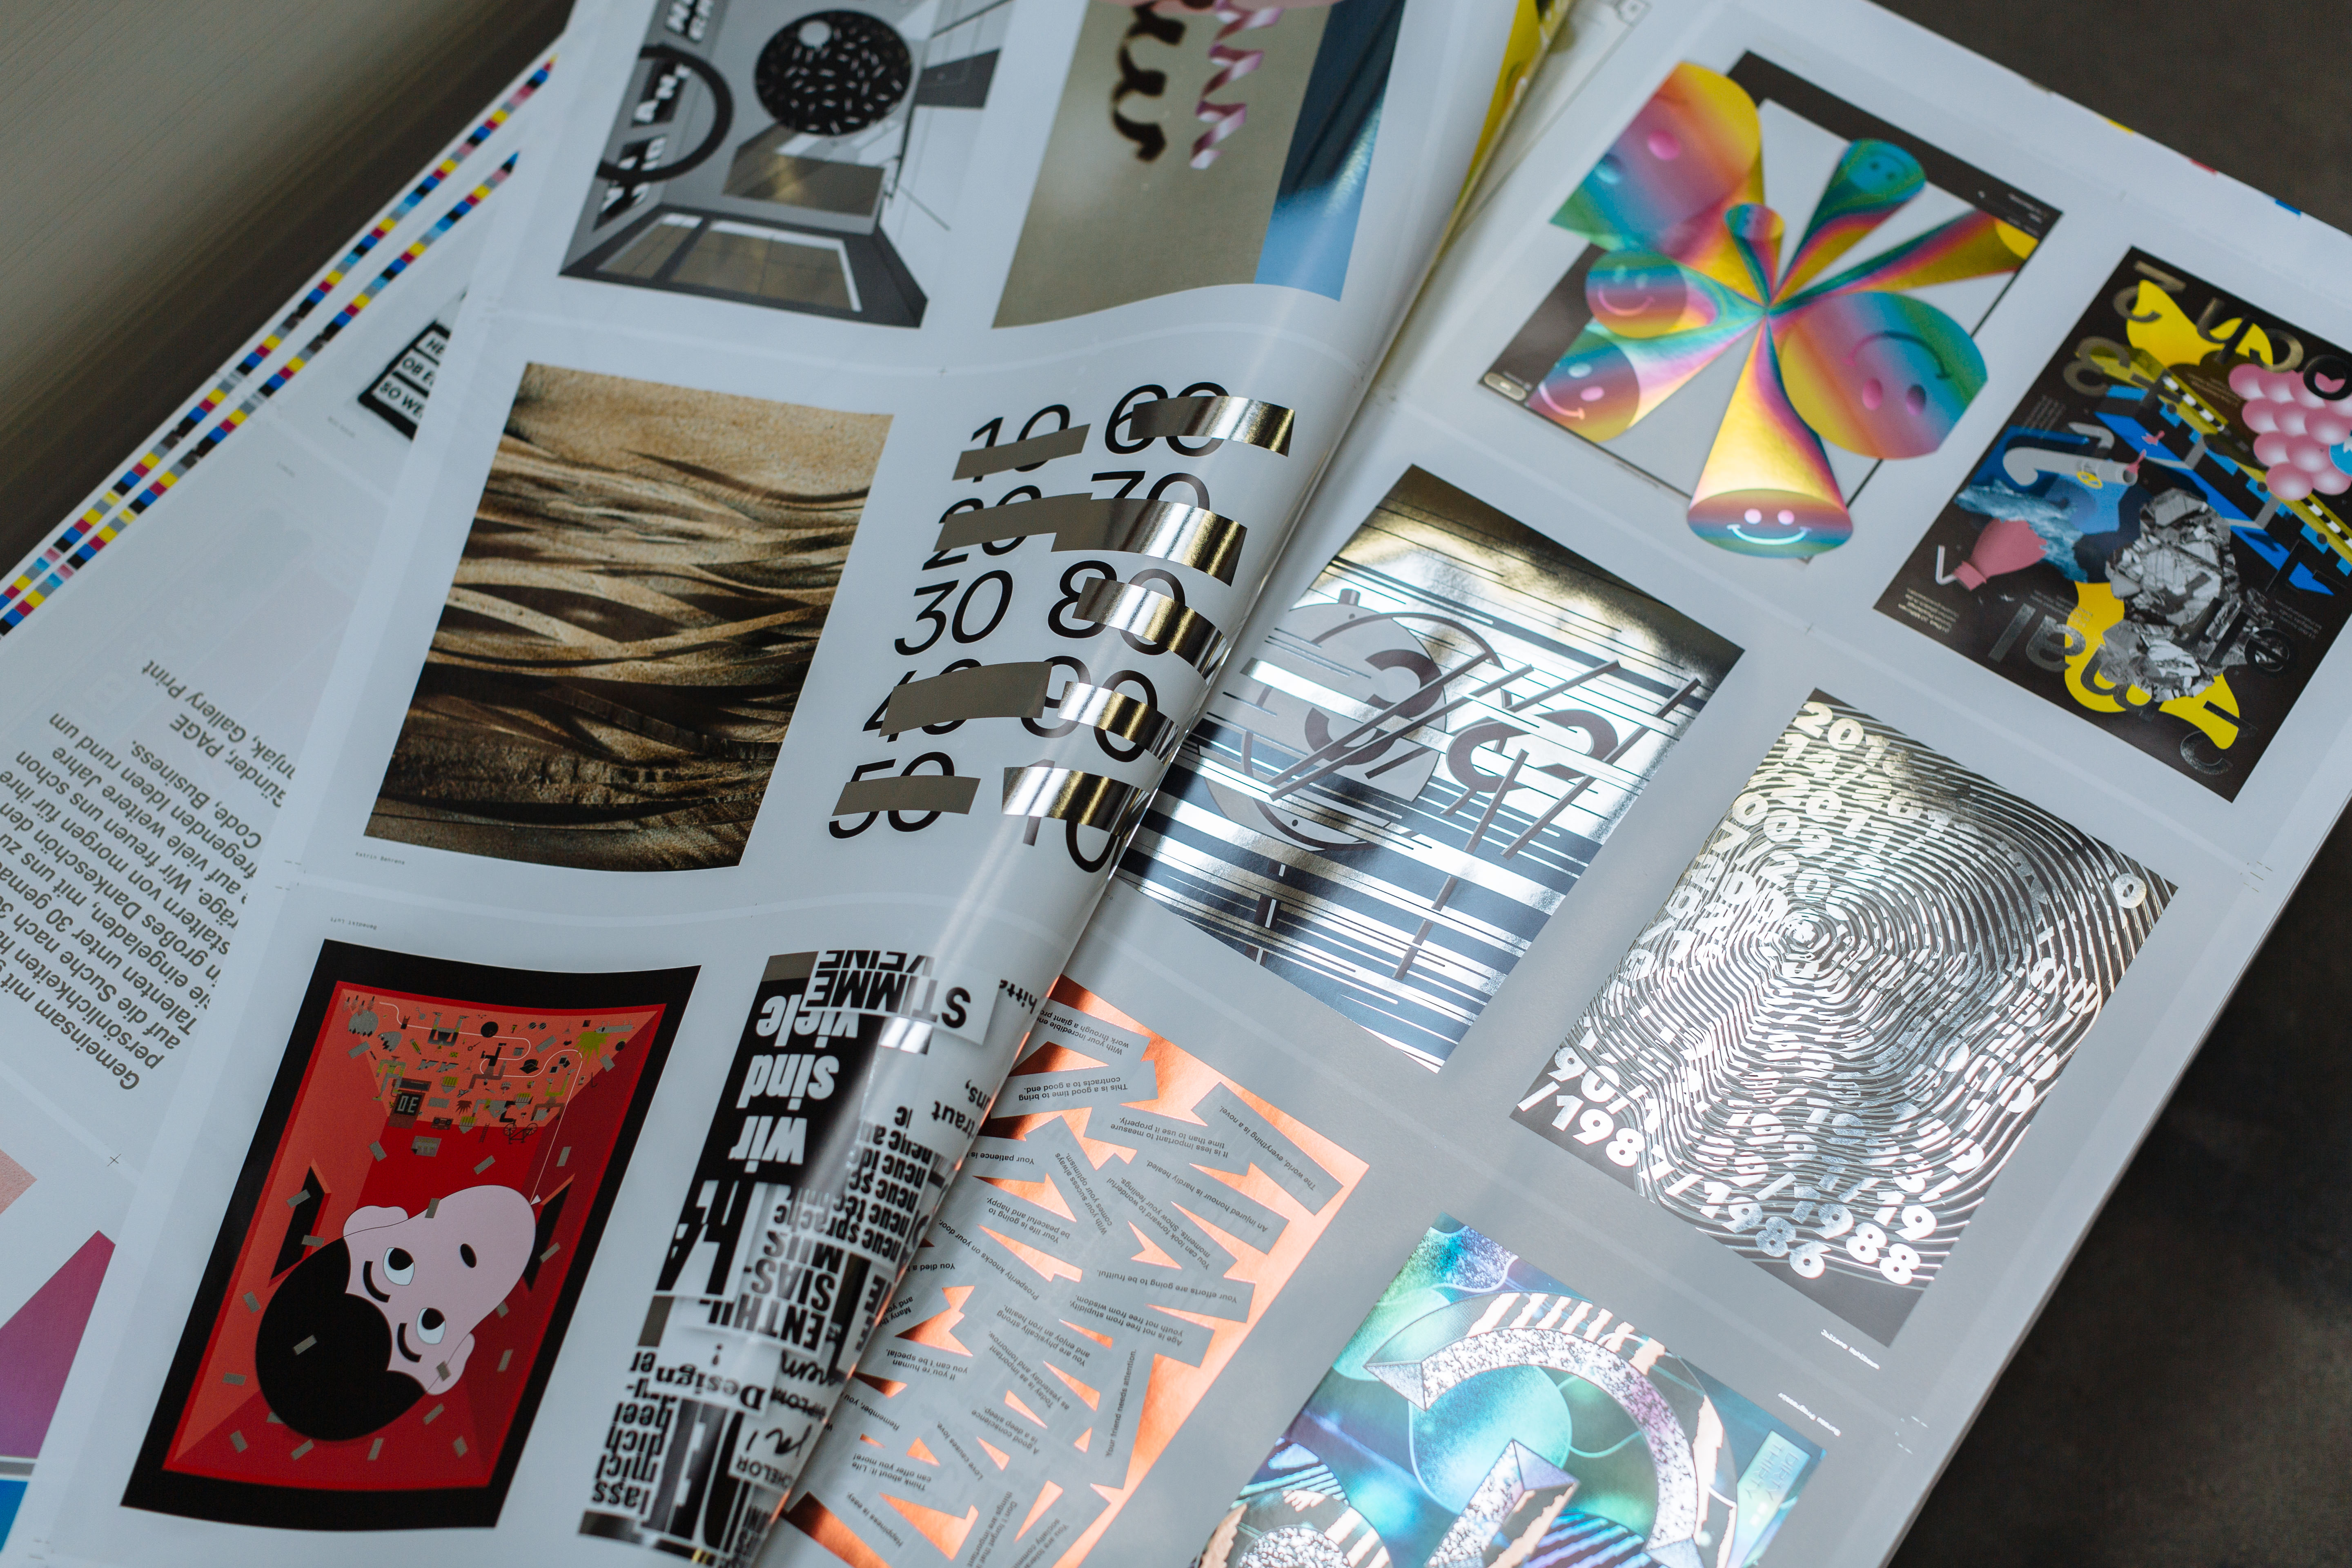 PAGE303030_Booklet_Druck_Gallery_Print